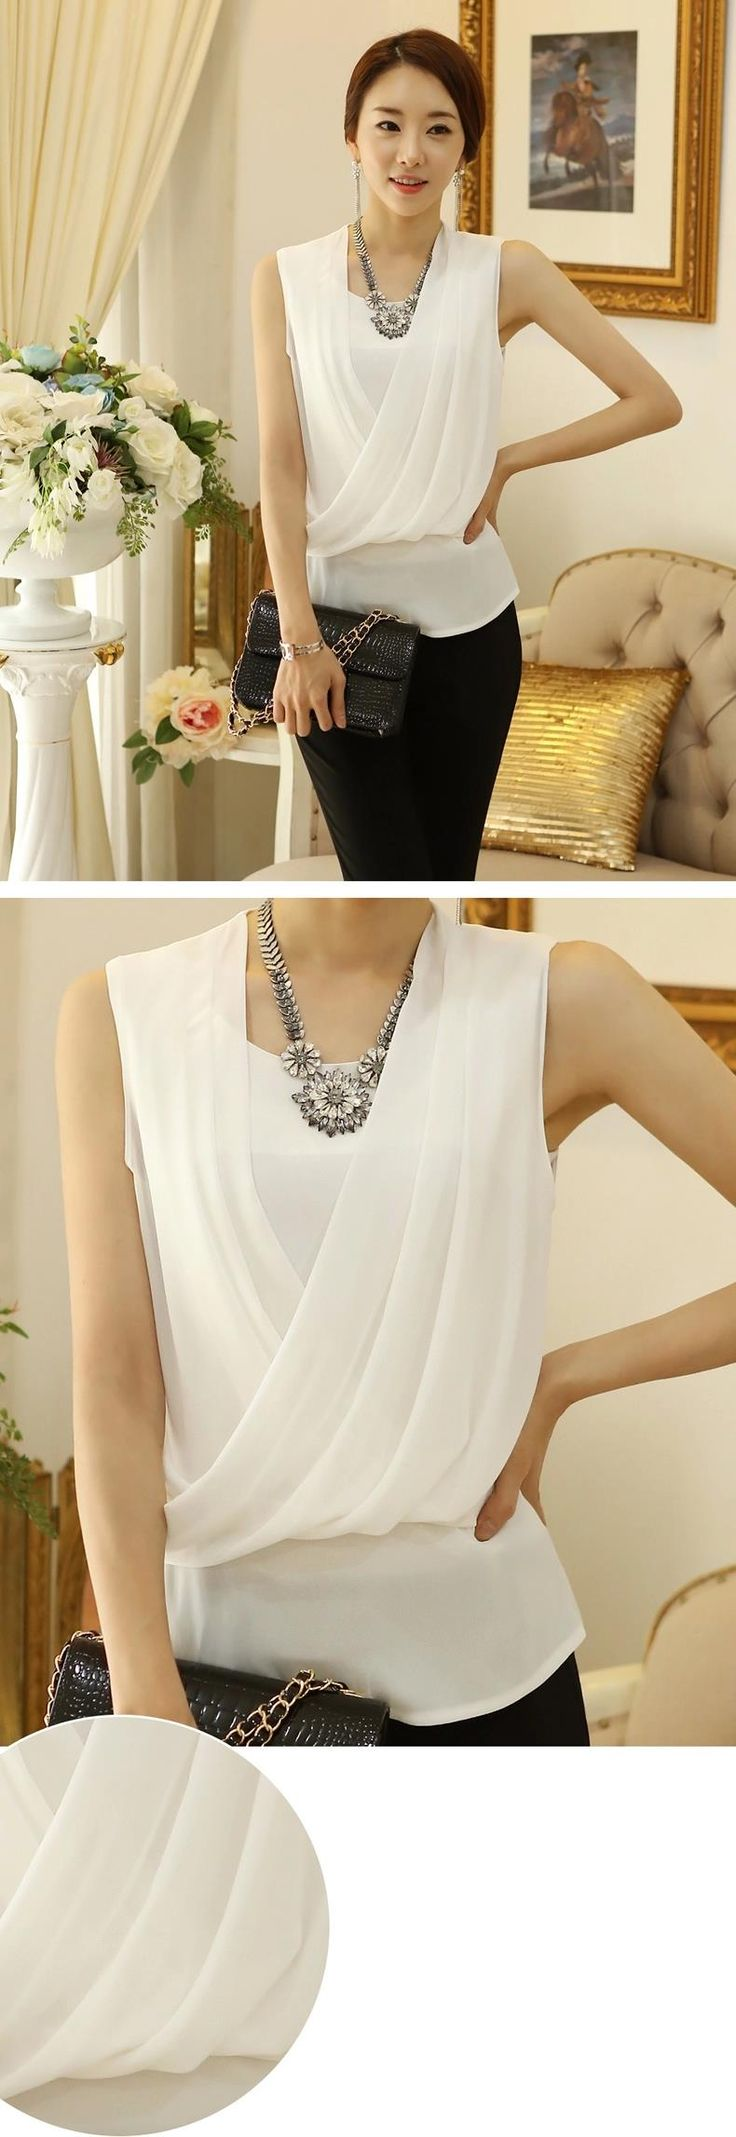 Aliexpress.com : Buy Sleeveless Feminine Blouse Chiffon Shirts Femininas Pleated Women Blouses Slim Female Shirt Elegant White Tops Chiffon Blouse from Reliable blouse dress suppliers on ceko | Alibaba Group                                                                                                                                                                                 Más